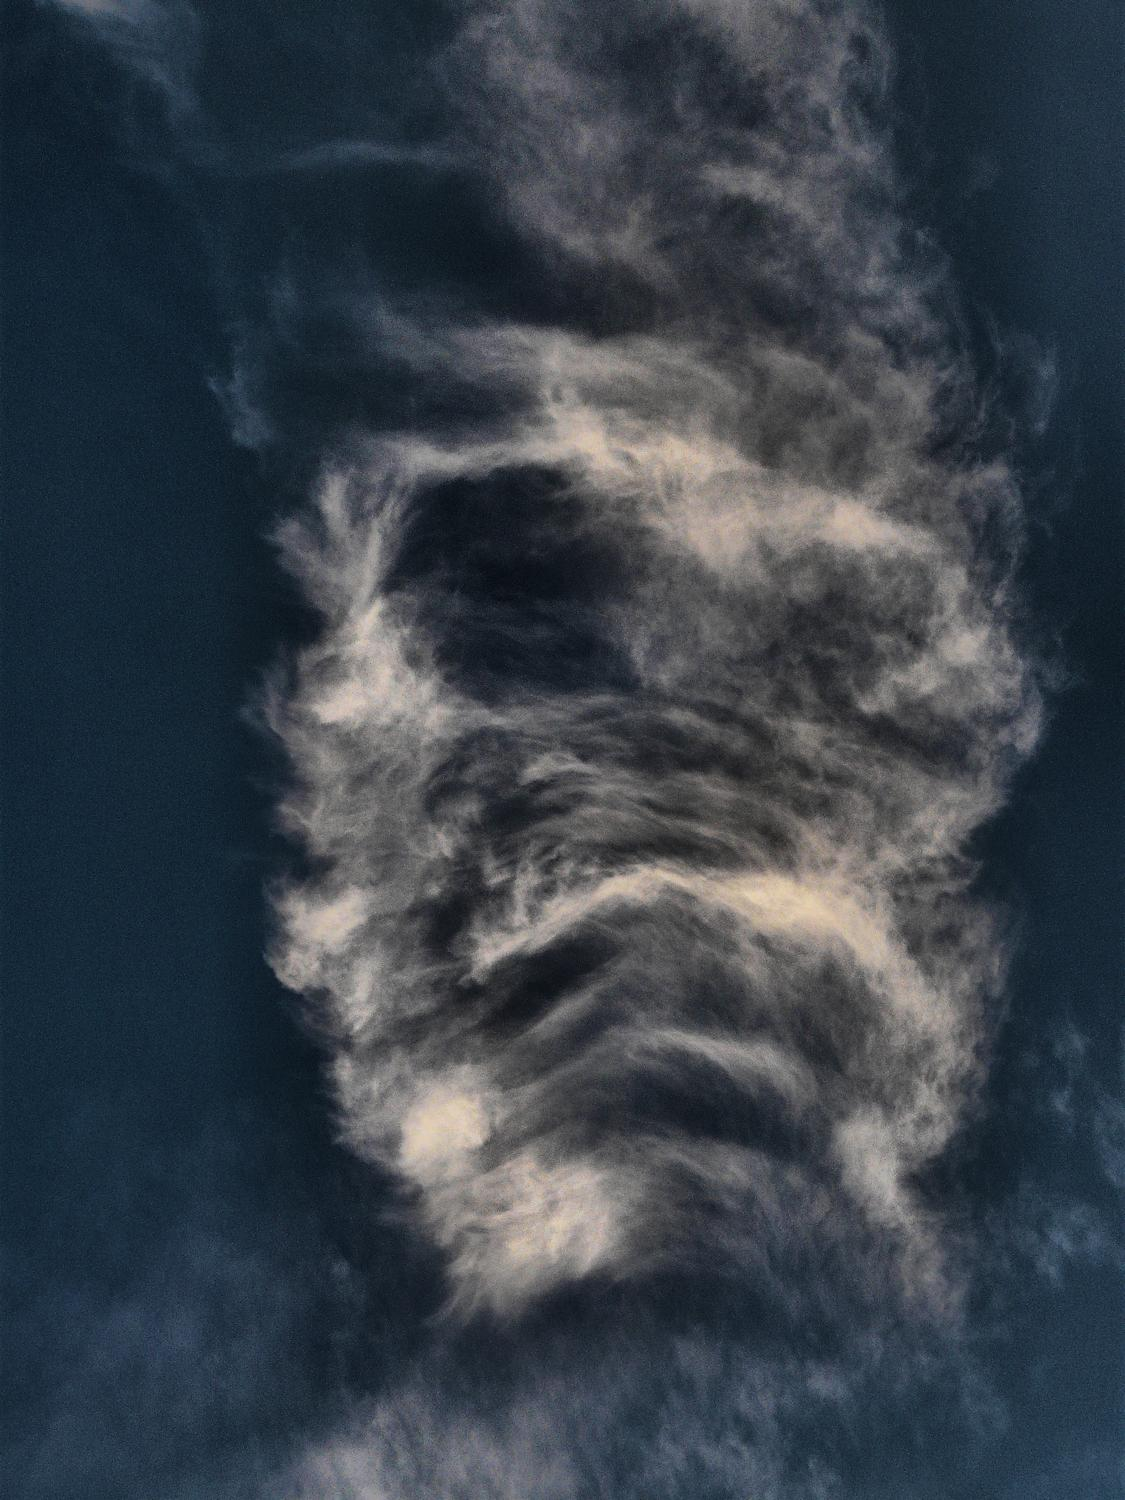 - A face in the cloud - Panasonic DMC-FZ18 - Tony Karp, design, art, photography, techno-impressionist, techno-impressionism, aerial photography , drone , drones , dji , mavic pro , video , 3D printing - Books -